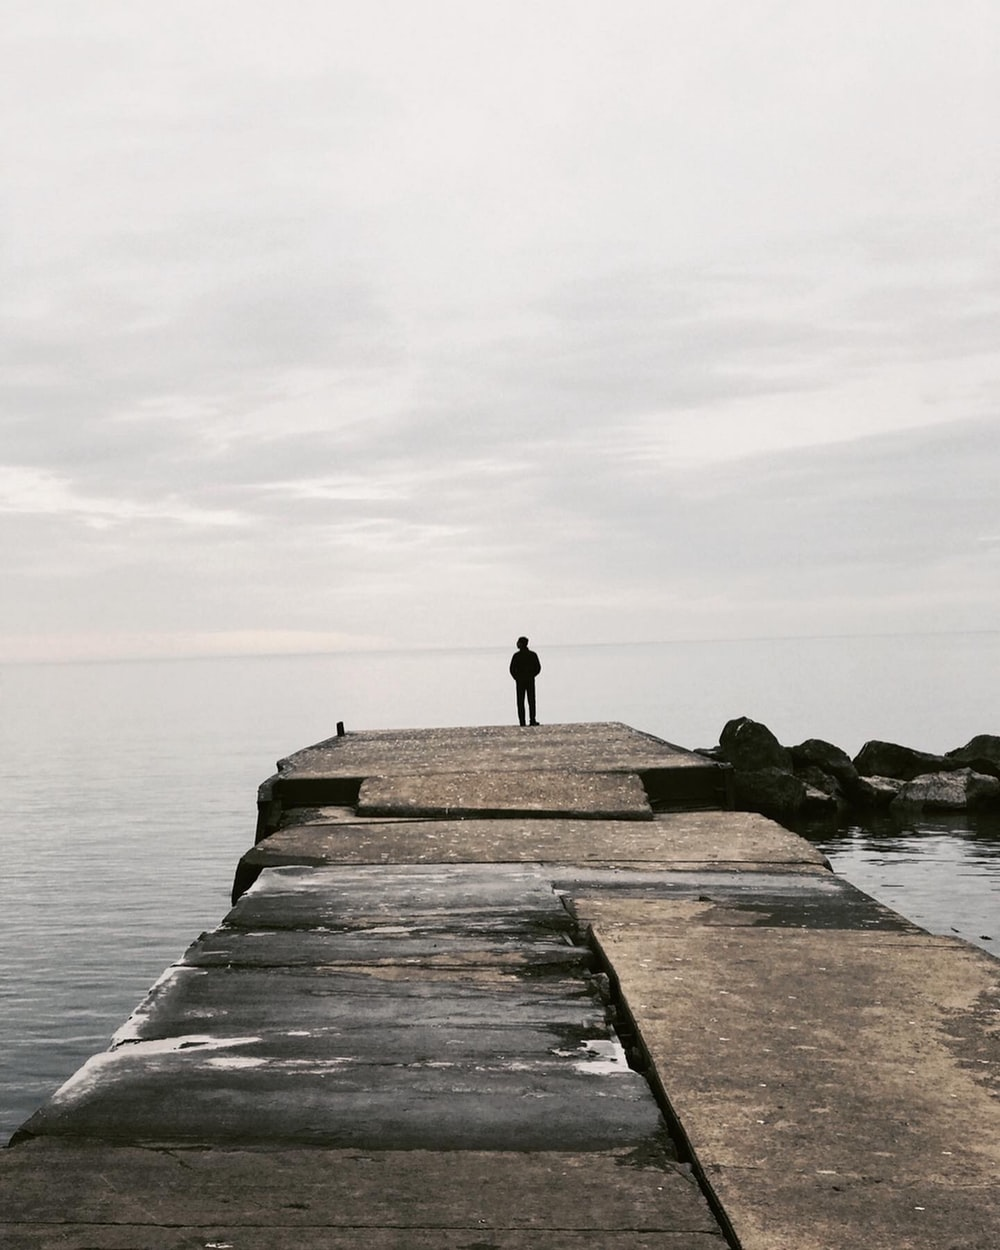 person standing on concrete dock near body of water during daytime